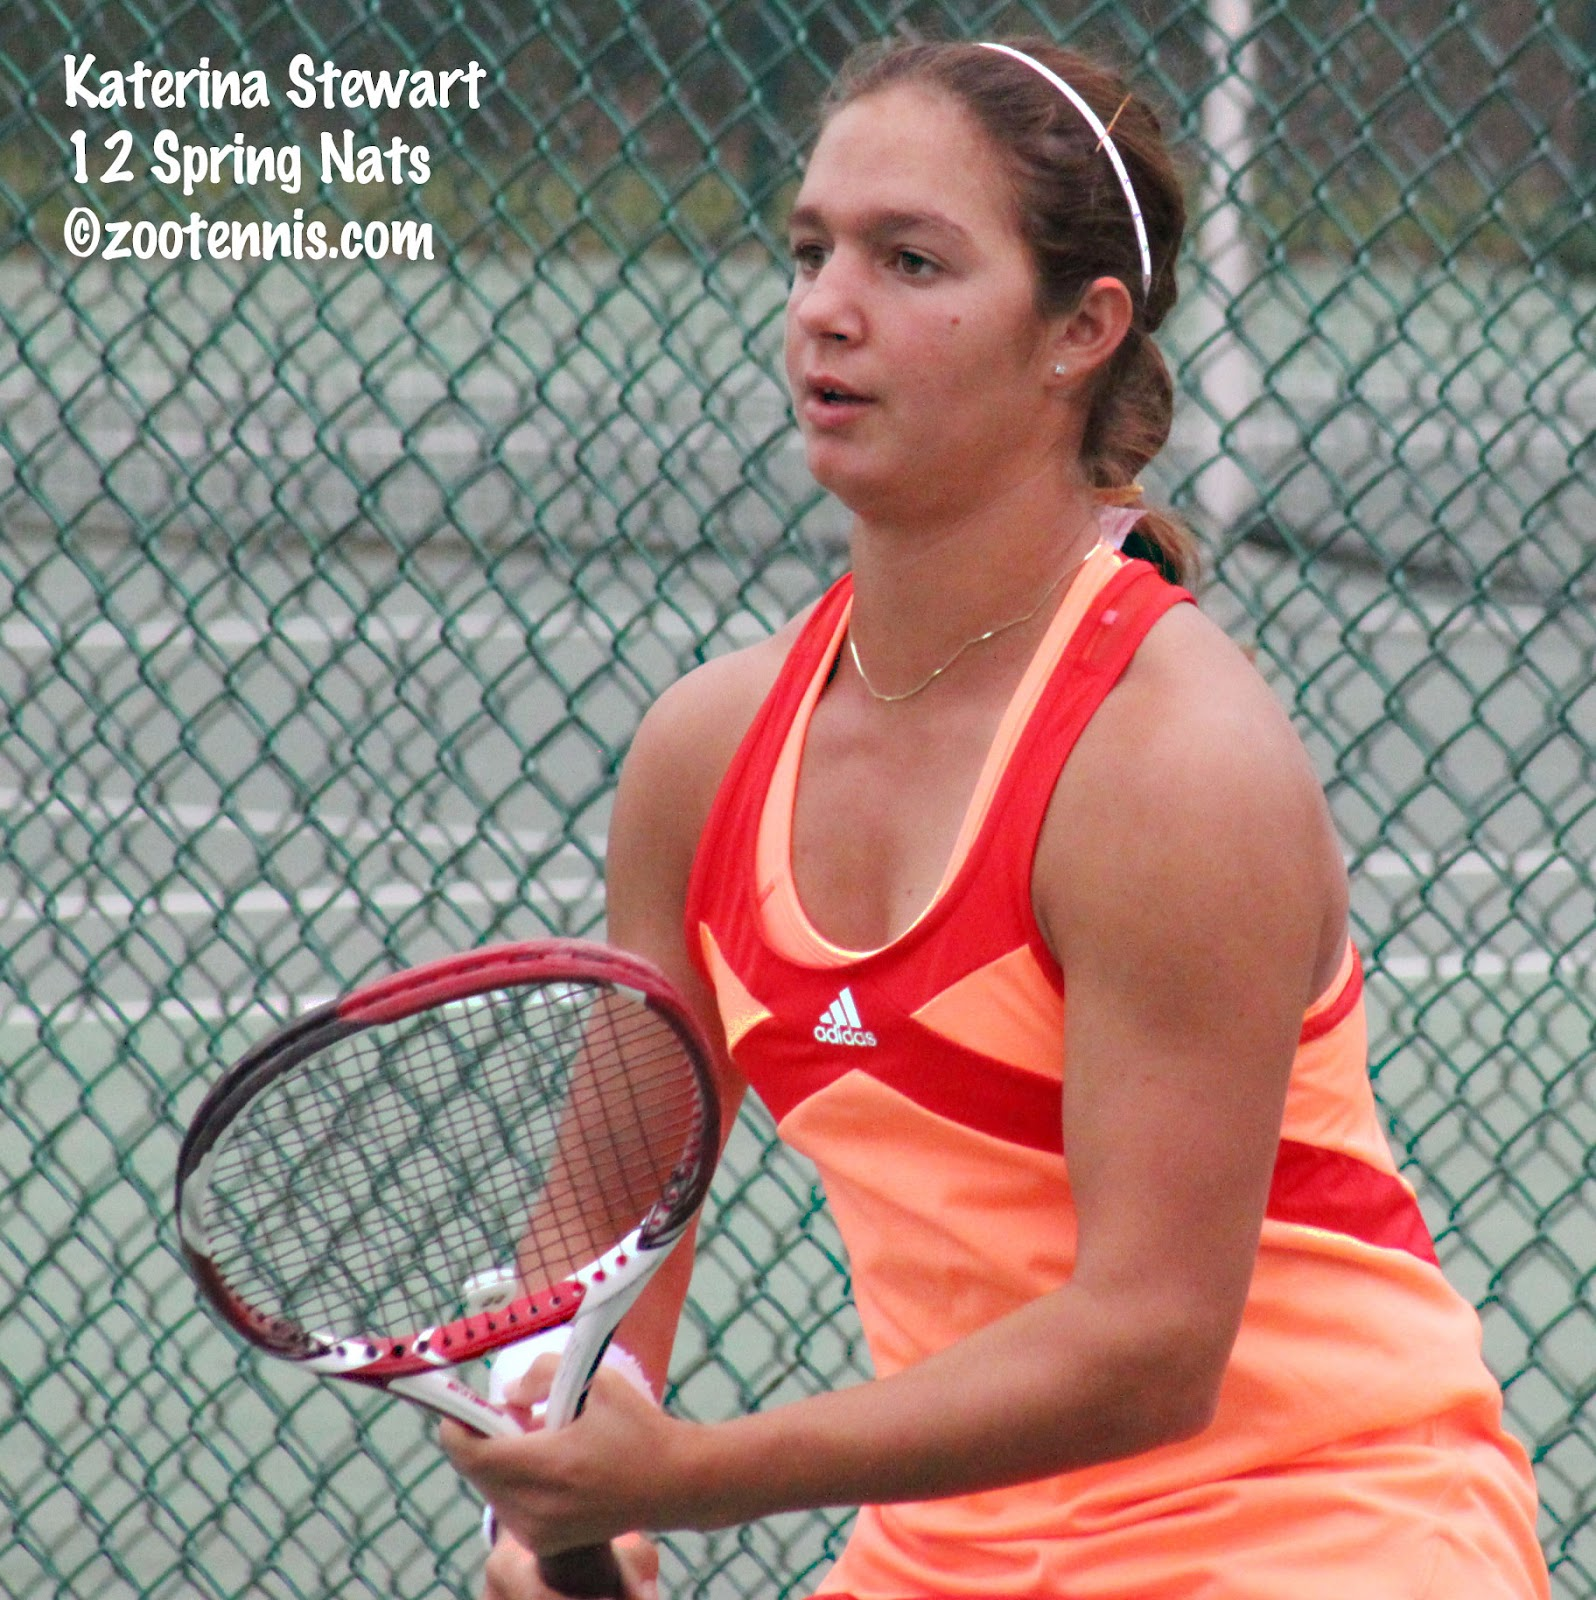 zootennis stewart daniel repeat at florida closed us open curtis junior state championships in honor of the usta section s legendary junior competition director wrapped up today and katerina stewart and jaeda